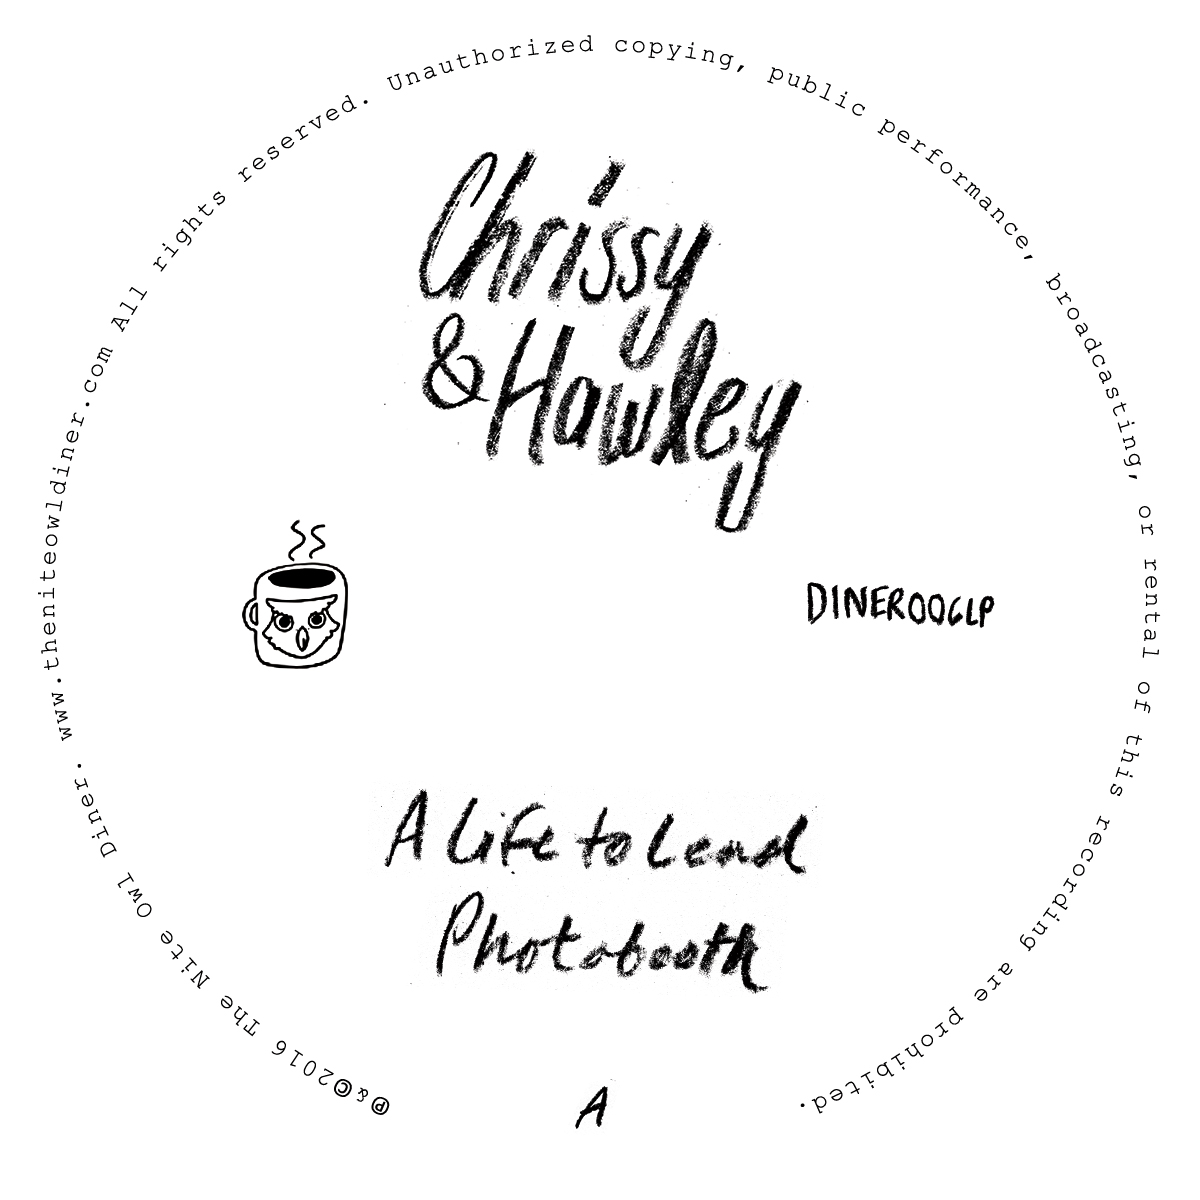 Chrissy & Hawley/CHRISSY & HAWLEY CD